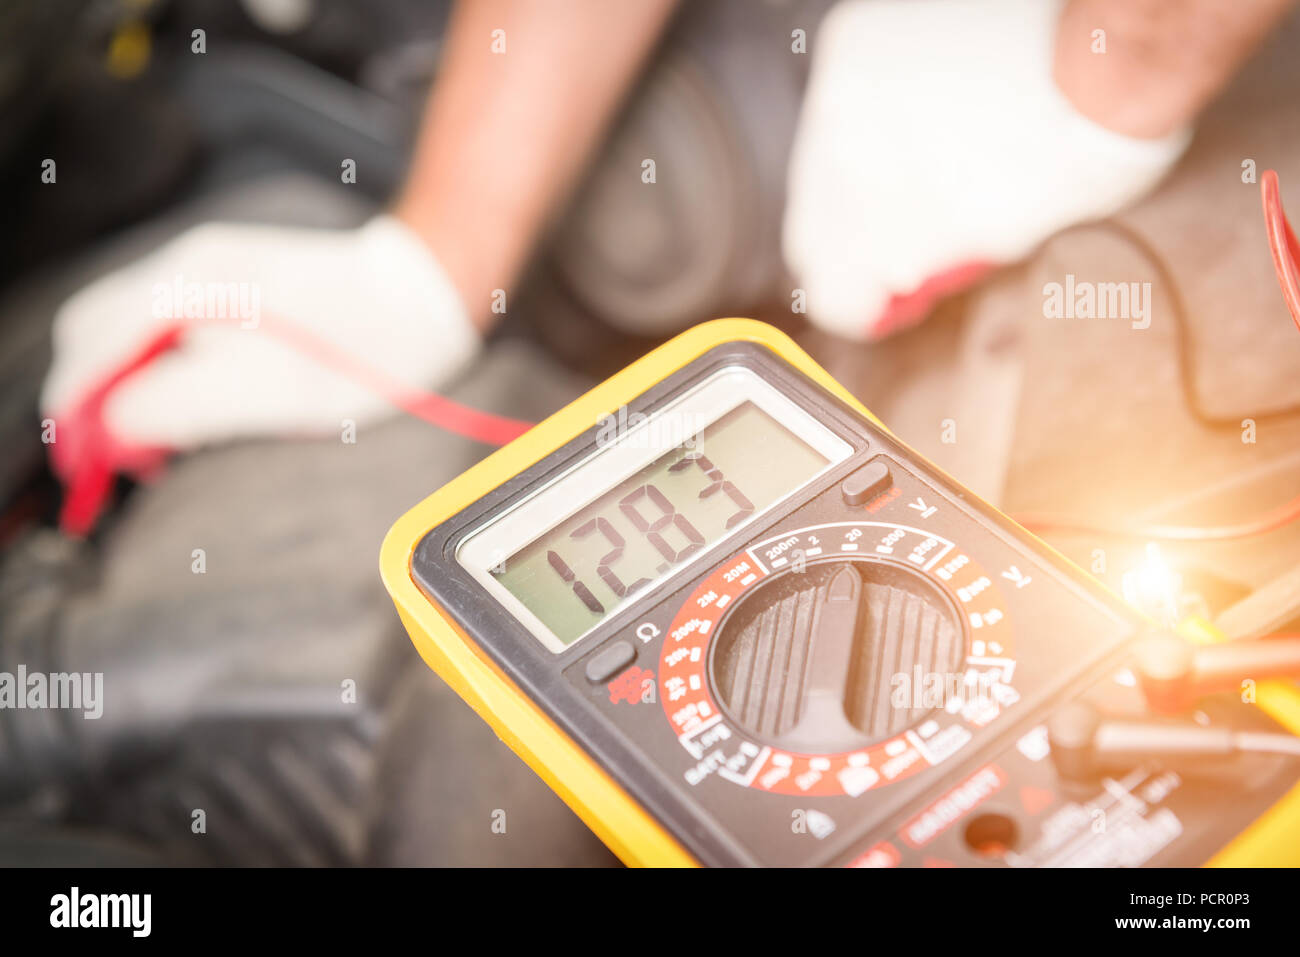 Car mechanic uses a multimeter to check car battery voltage - Stock Image